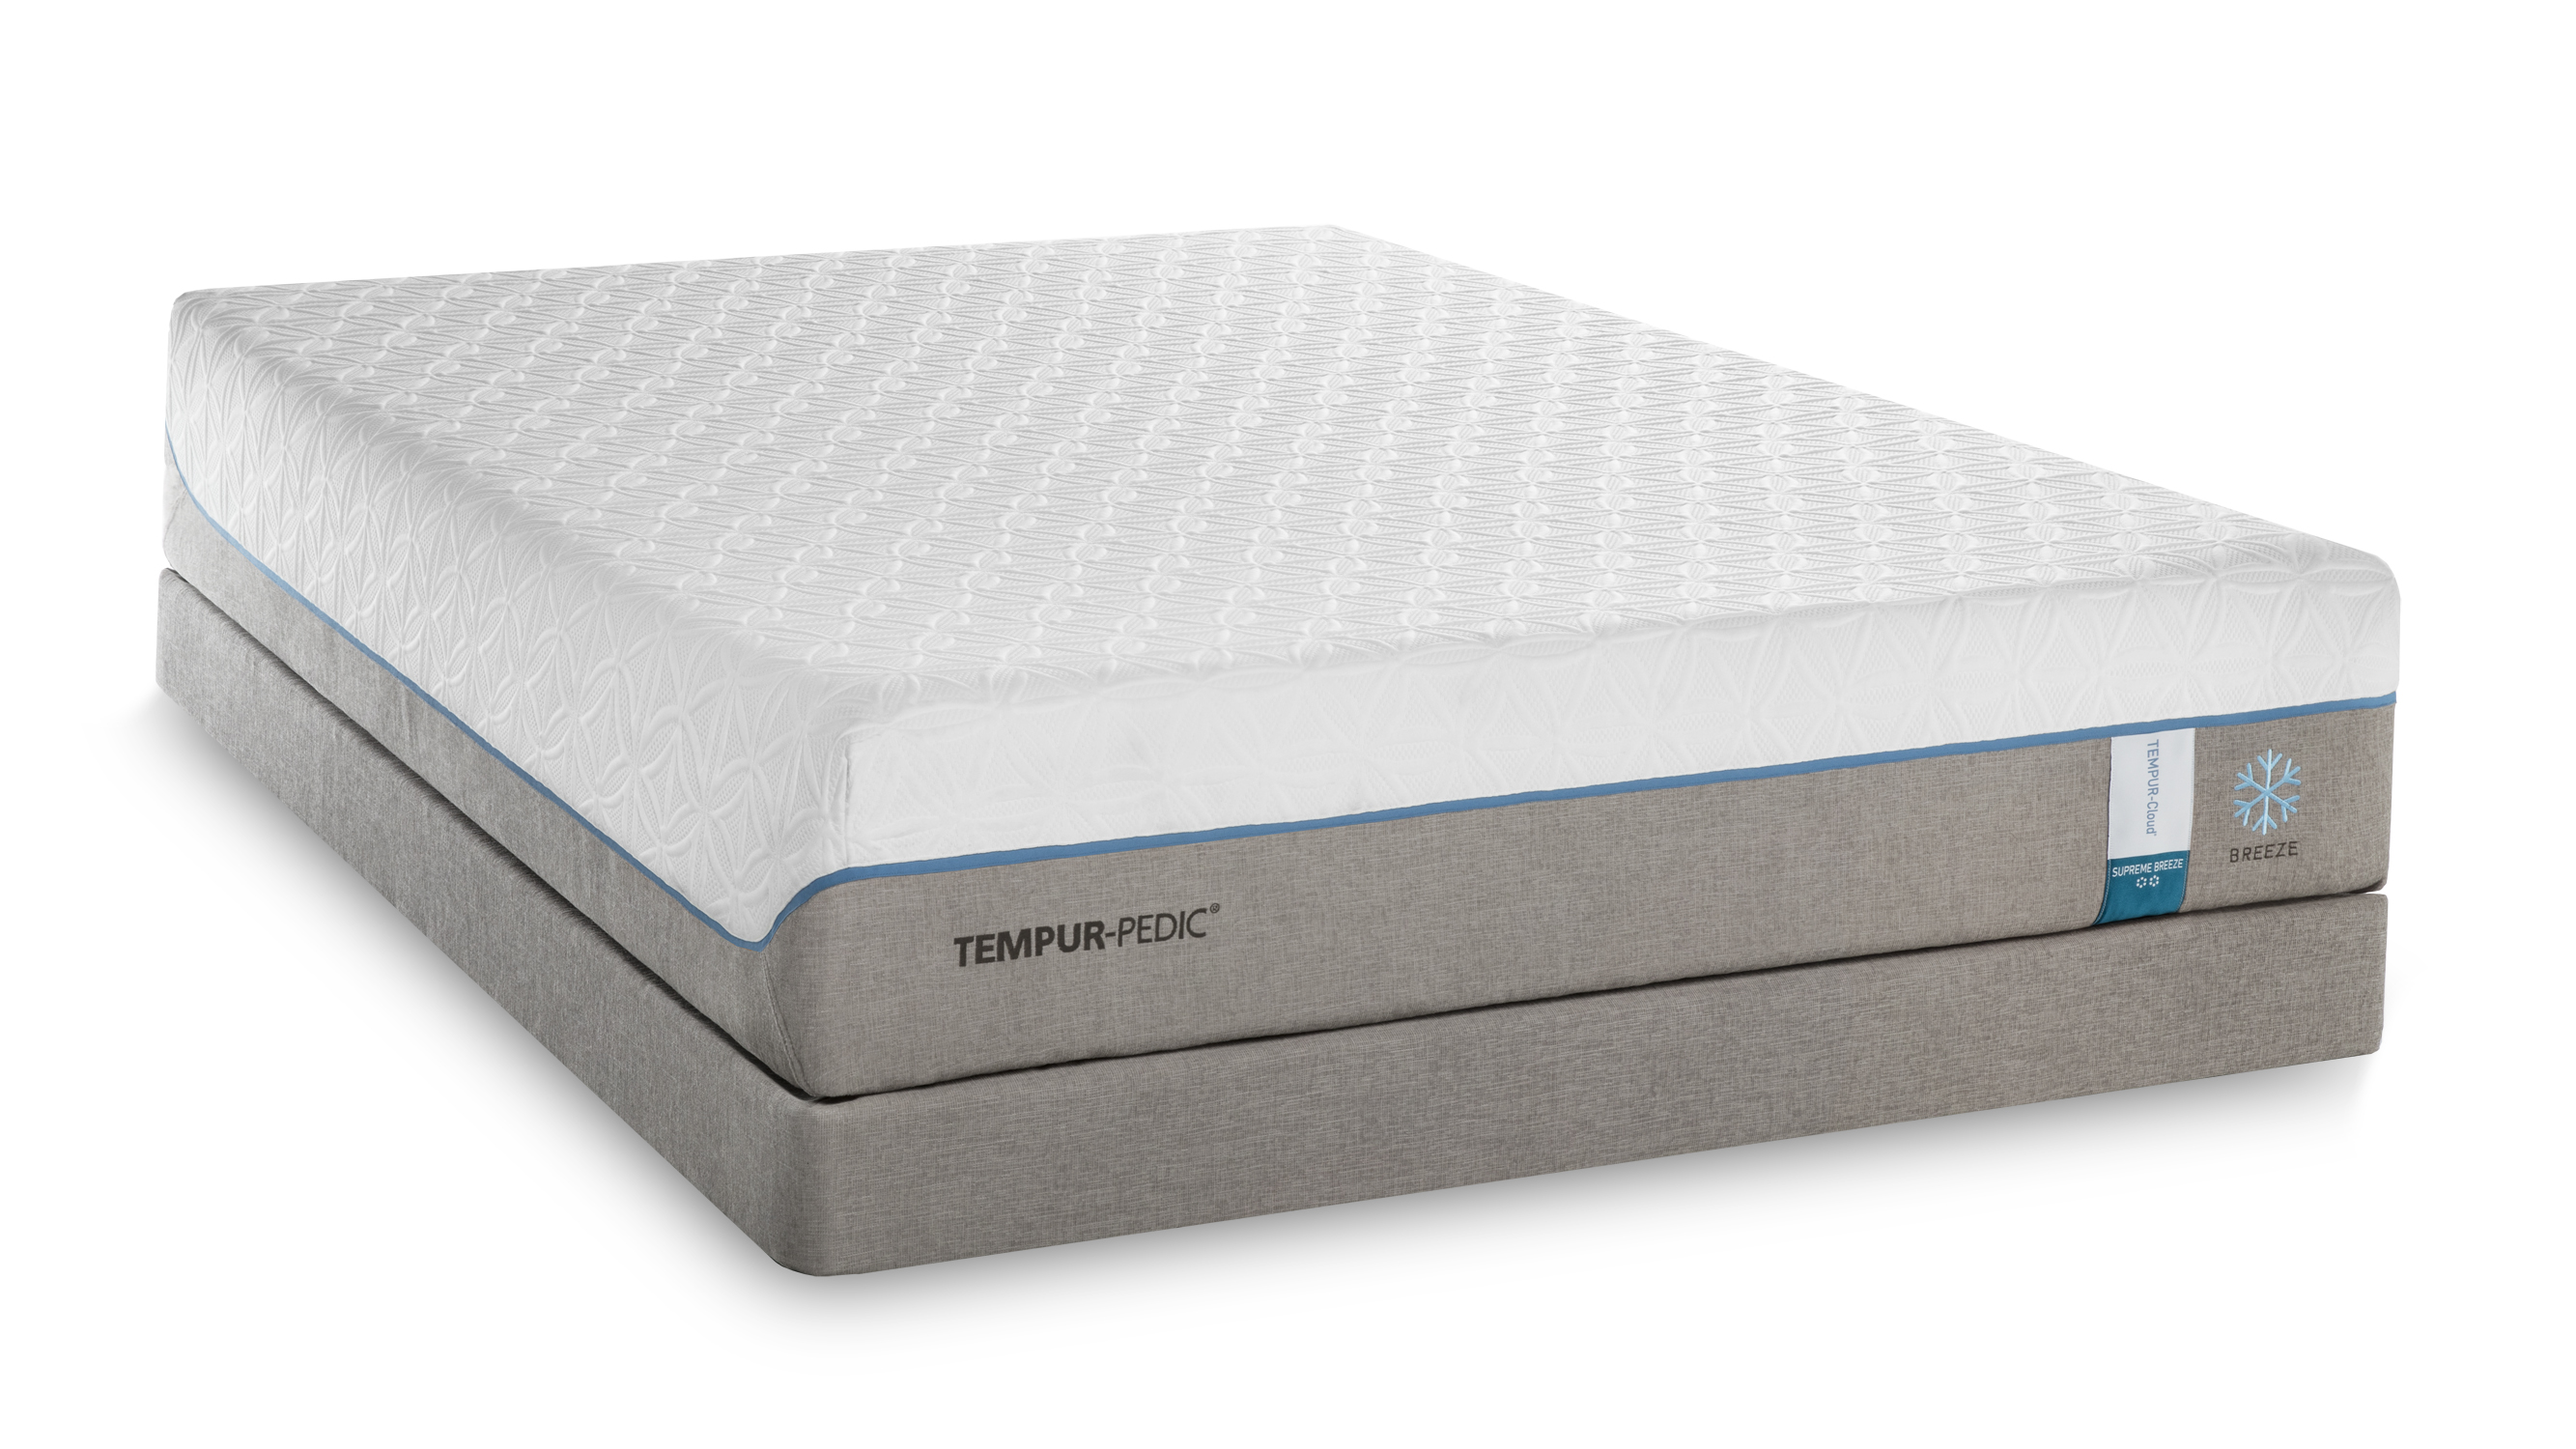 Tempurpedic Mattress King Size Tempur Pedic Tempur Cloud Supreme Breeze Split California